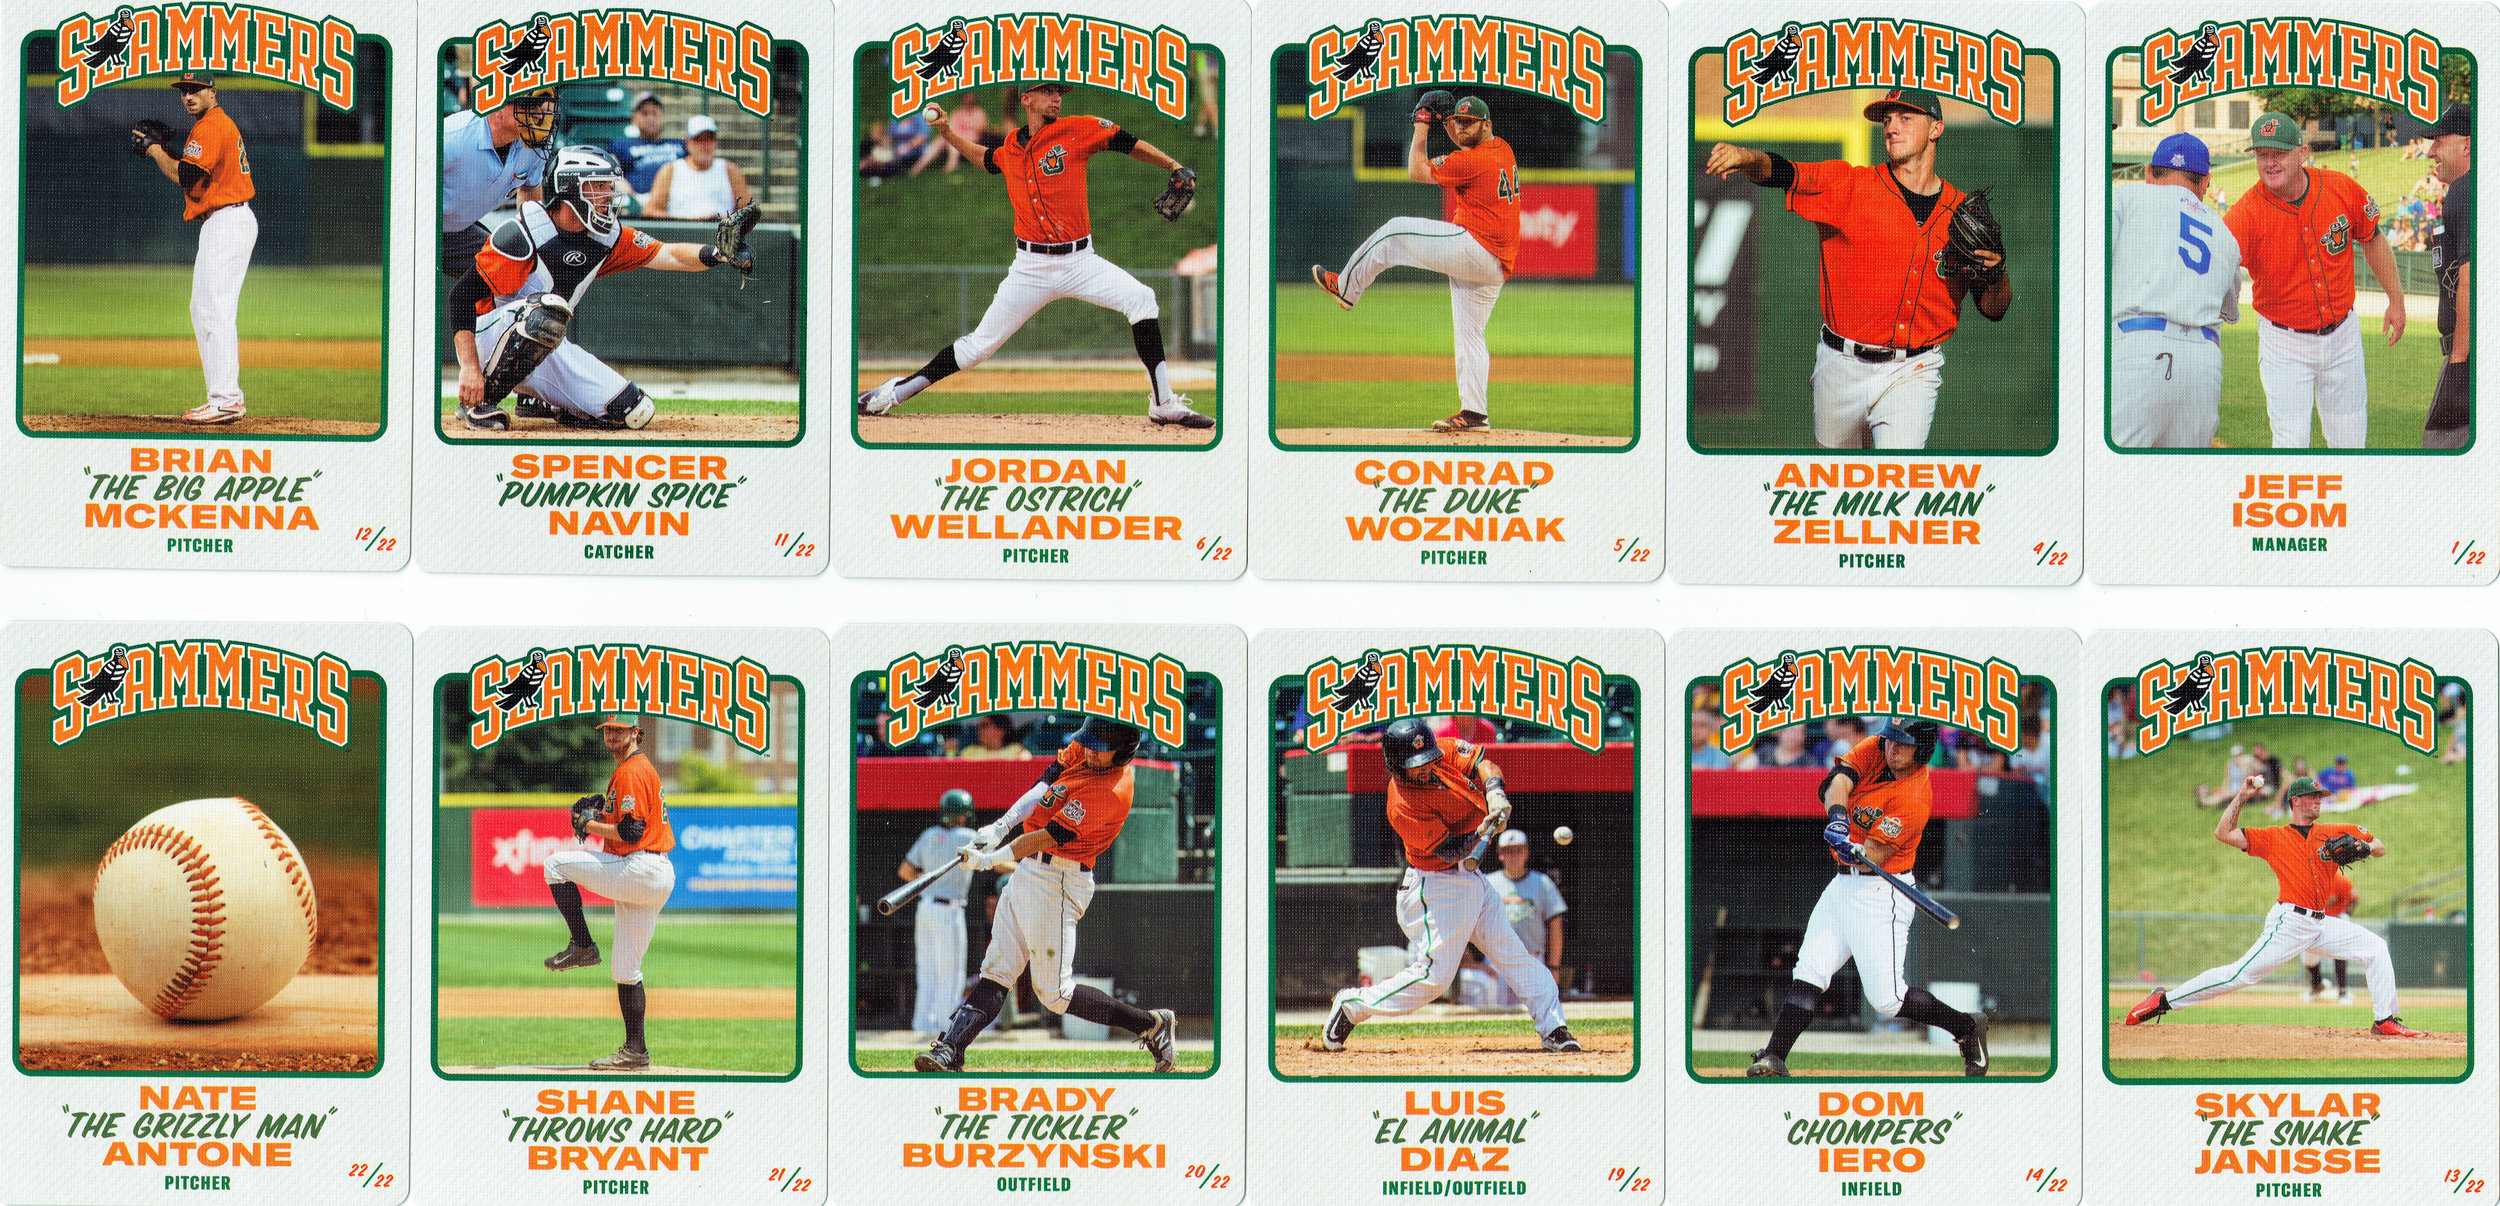 Joliet Slammers Baseball cards (fronts)